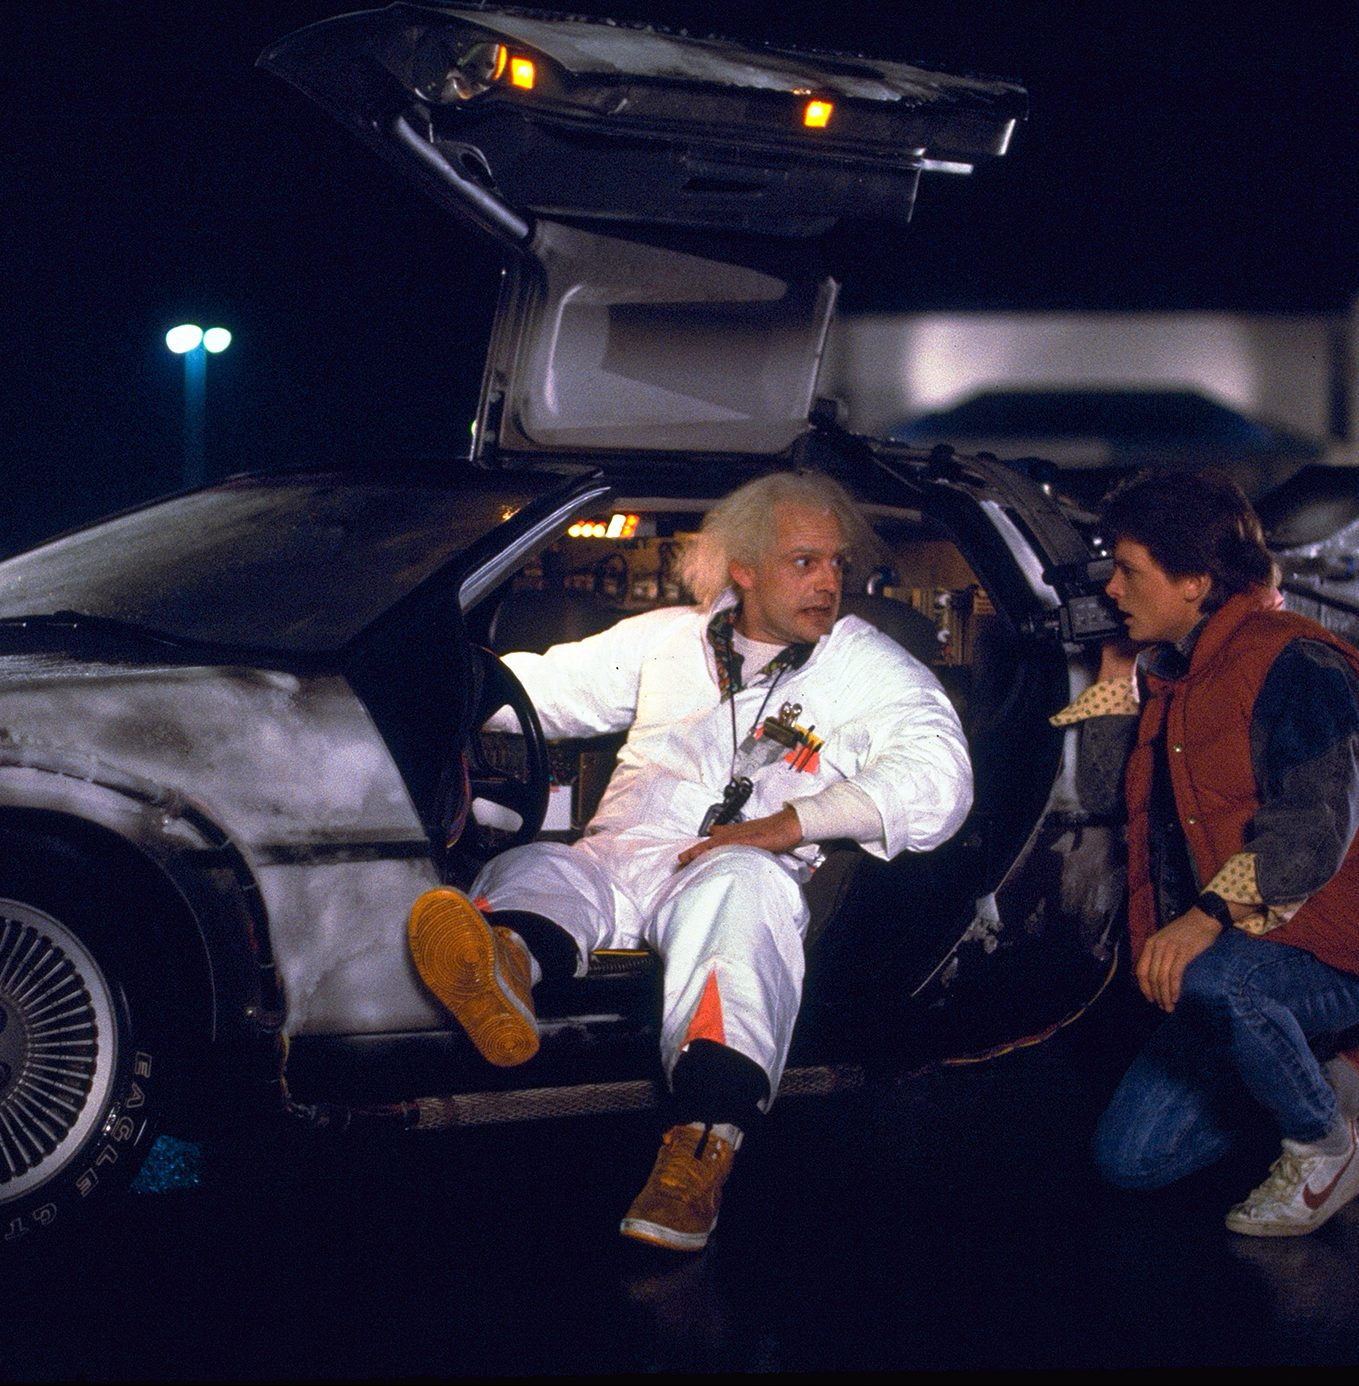 160128 em delorean e1582102623472 10 Vehicles From 80s Movies And TV Shows You Wish You Owned